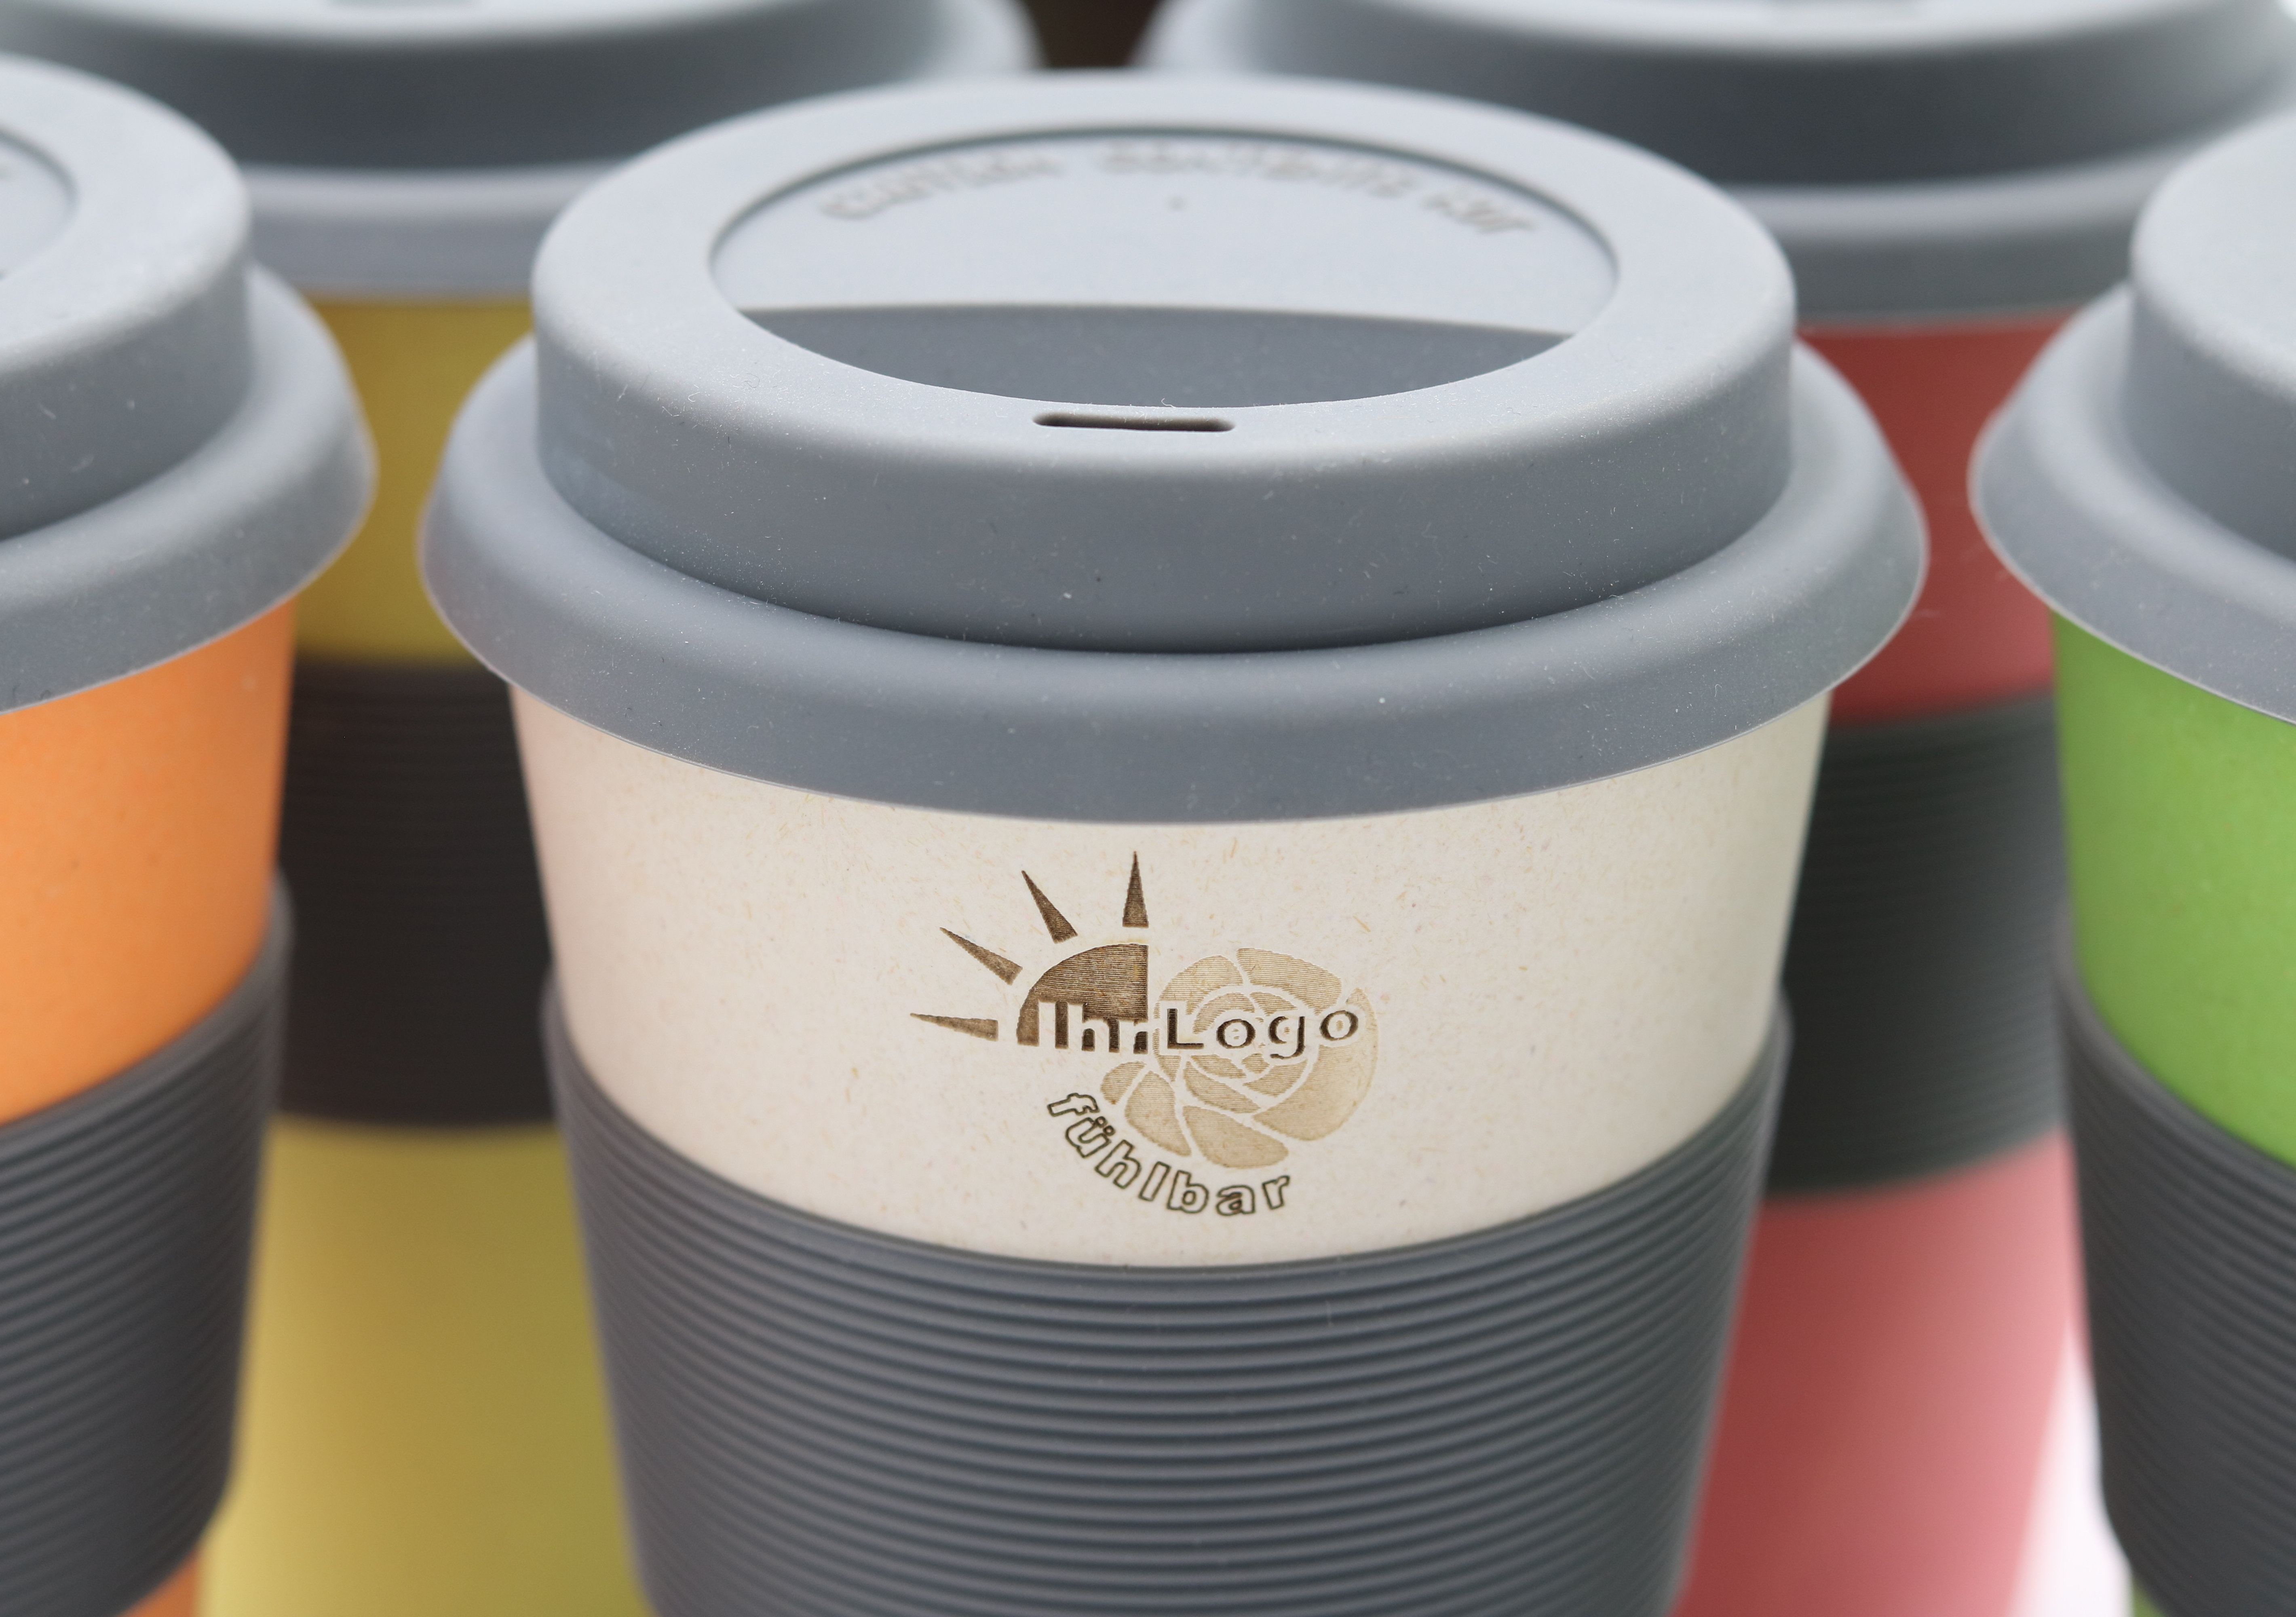 Bambus Becher Mit Namen Your Logo On A Coffee To Go Cup Bambus Geschirr